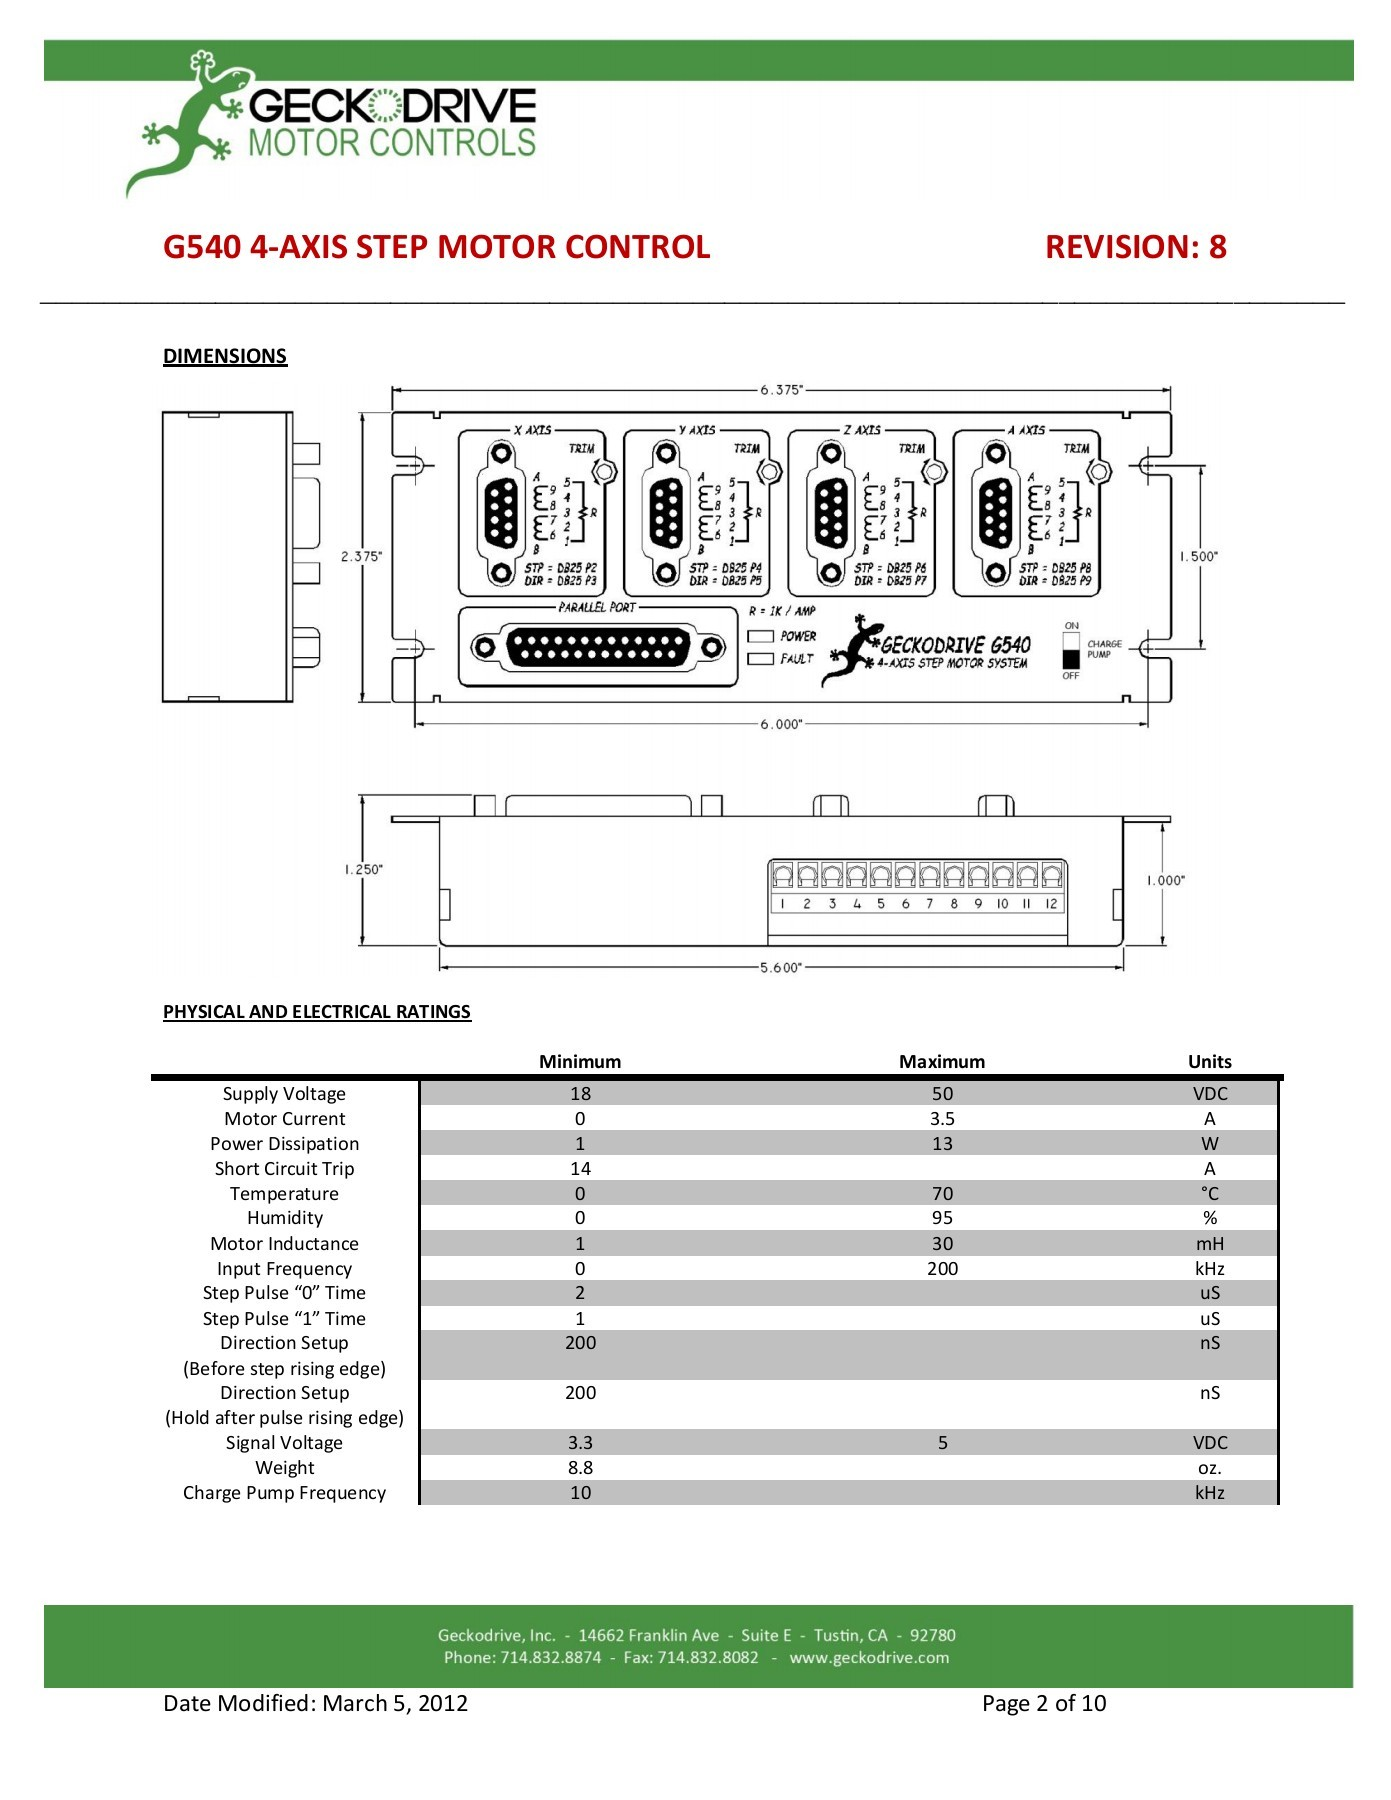 hight resolution of g540 user manual step motor controls pages 1 10 text version fliphtml5